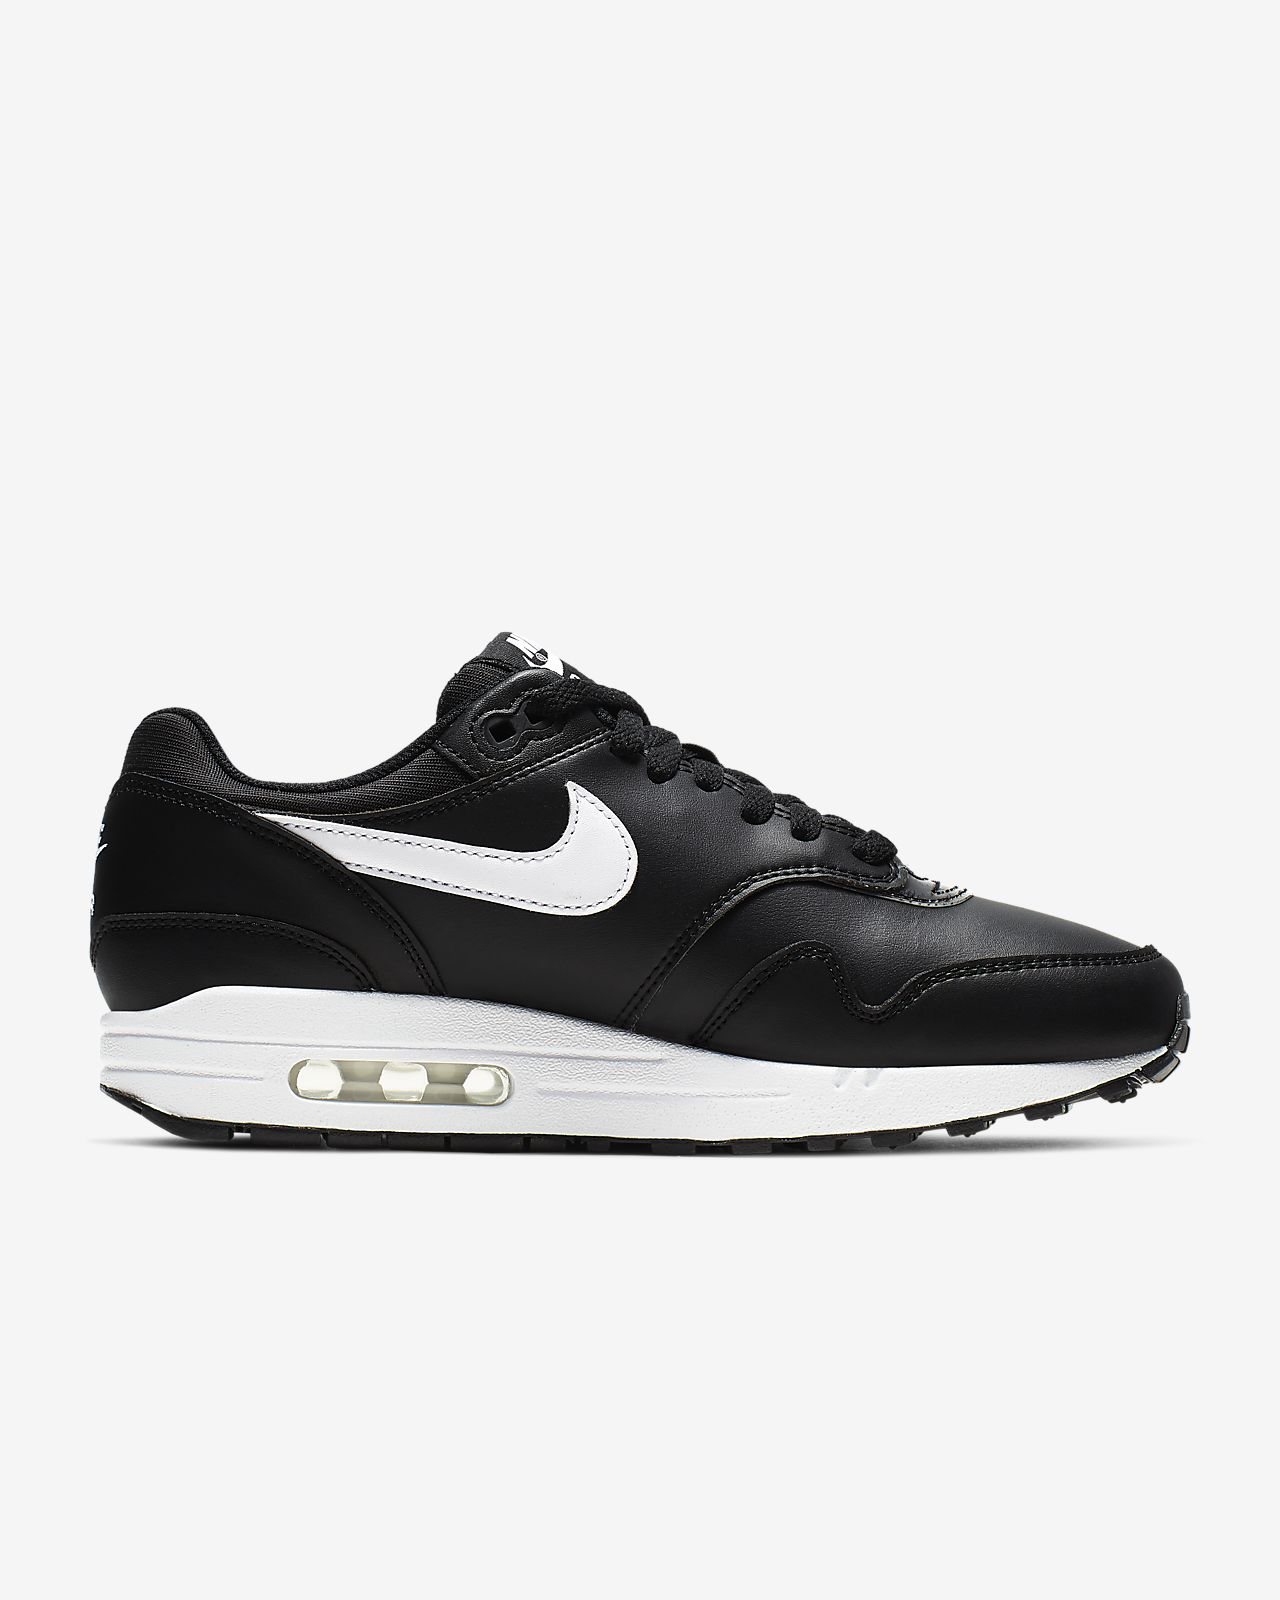 new product d0c75 f511d ... Nike Air Max 1 Women s Shoe